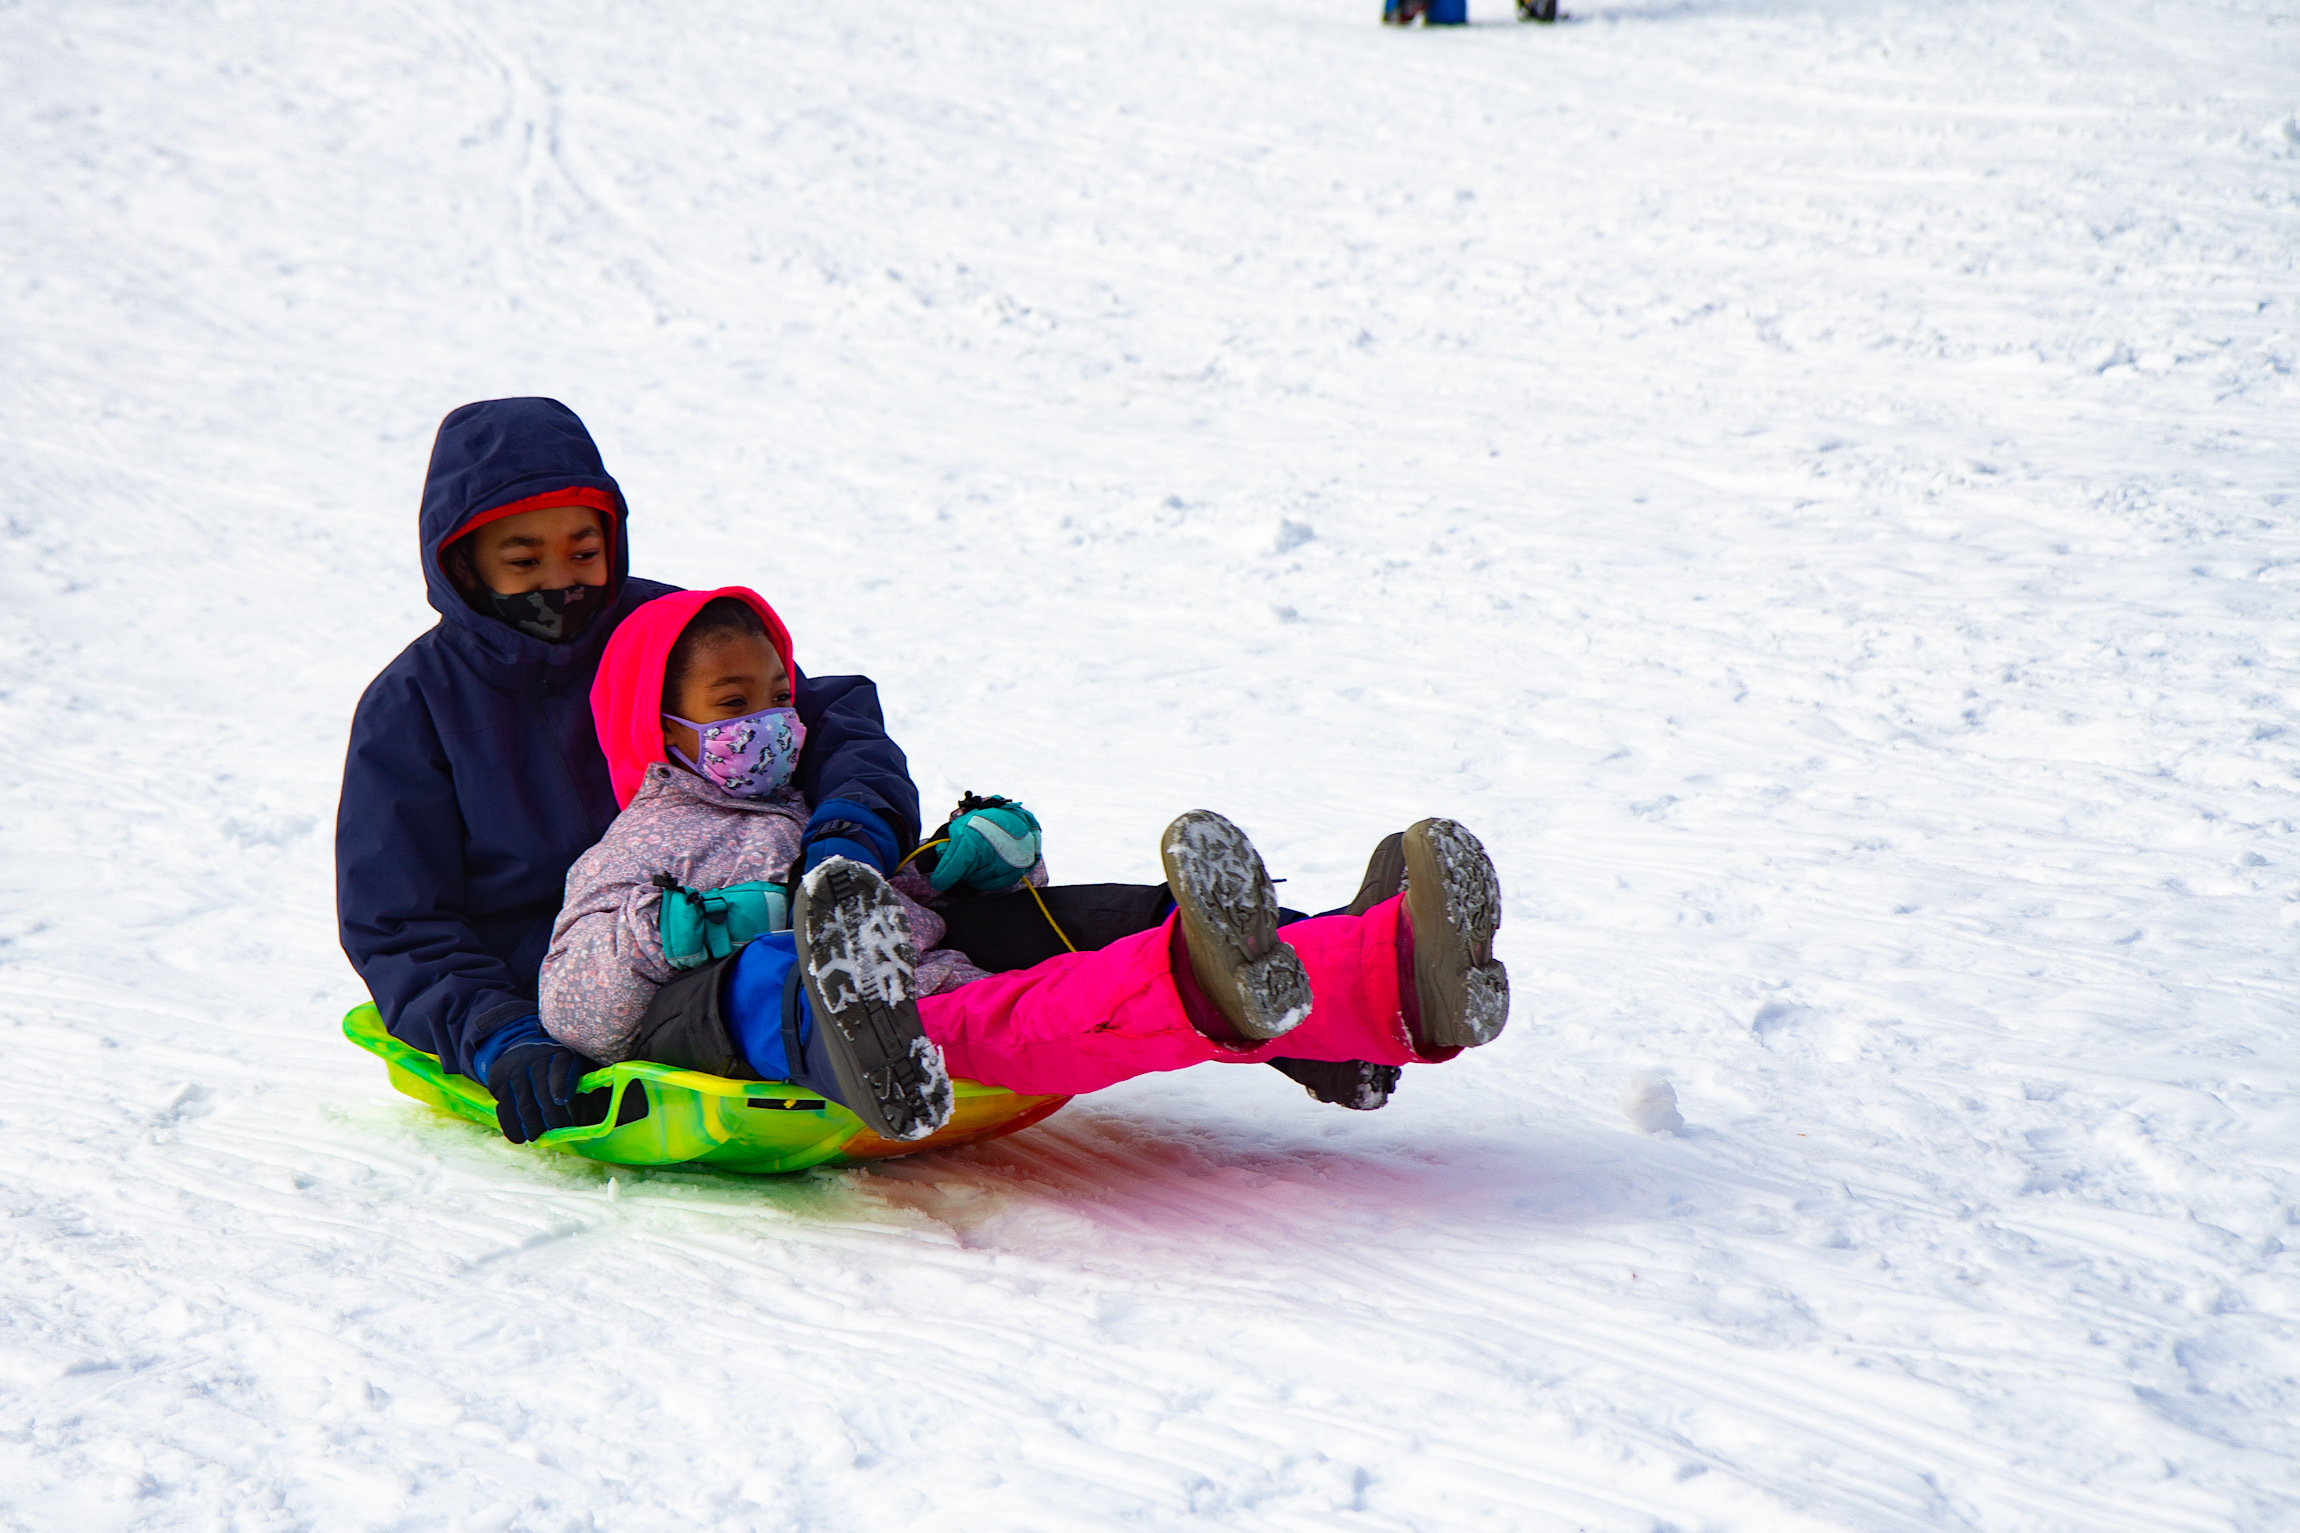 Two happy sledders skid down the dome at Clark Park in West Philadelphia.